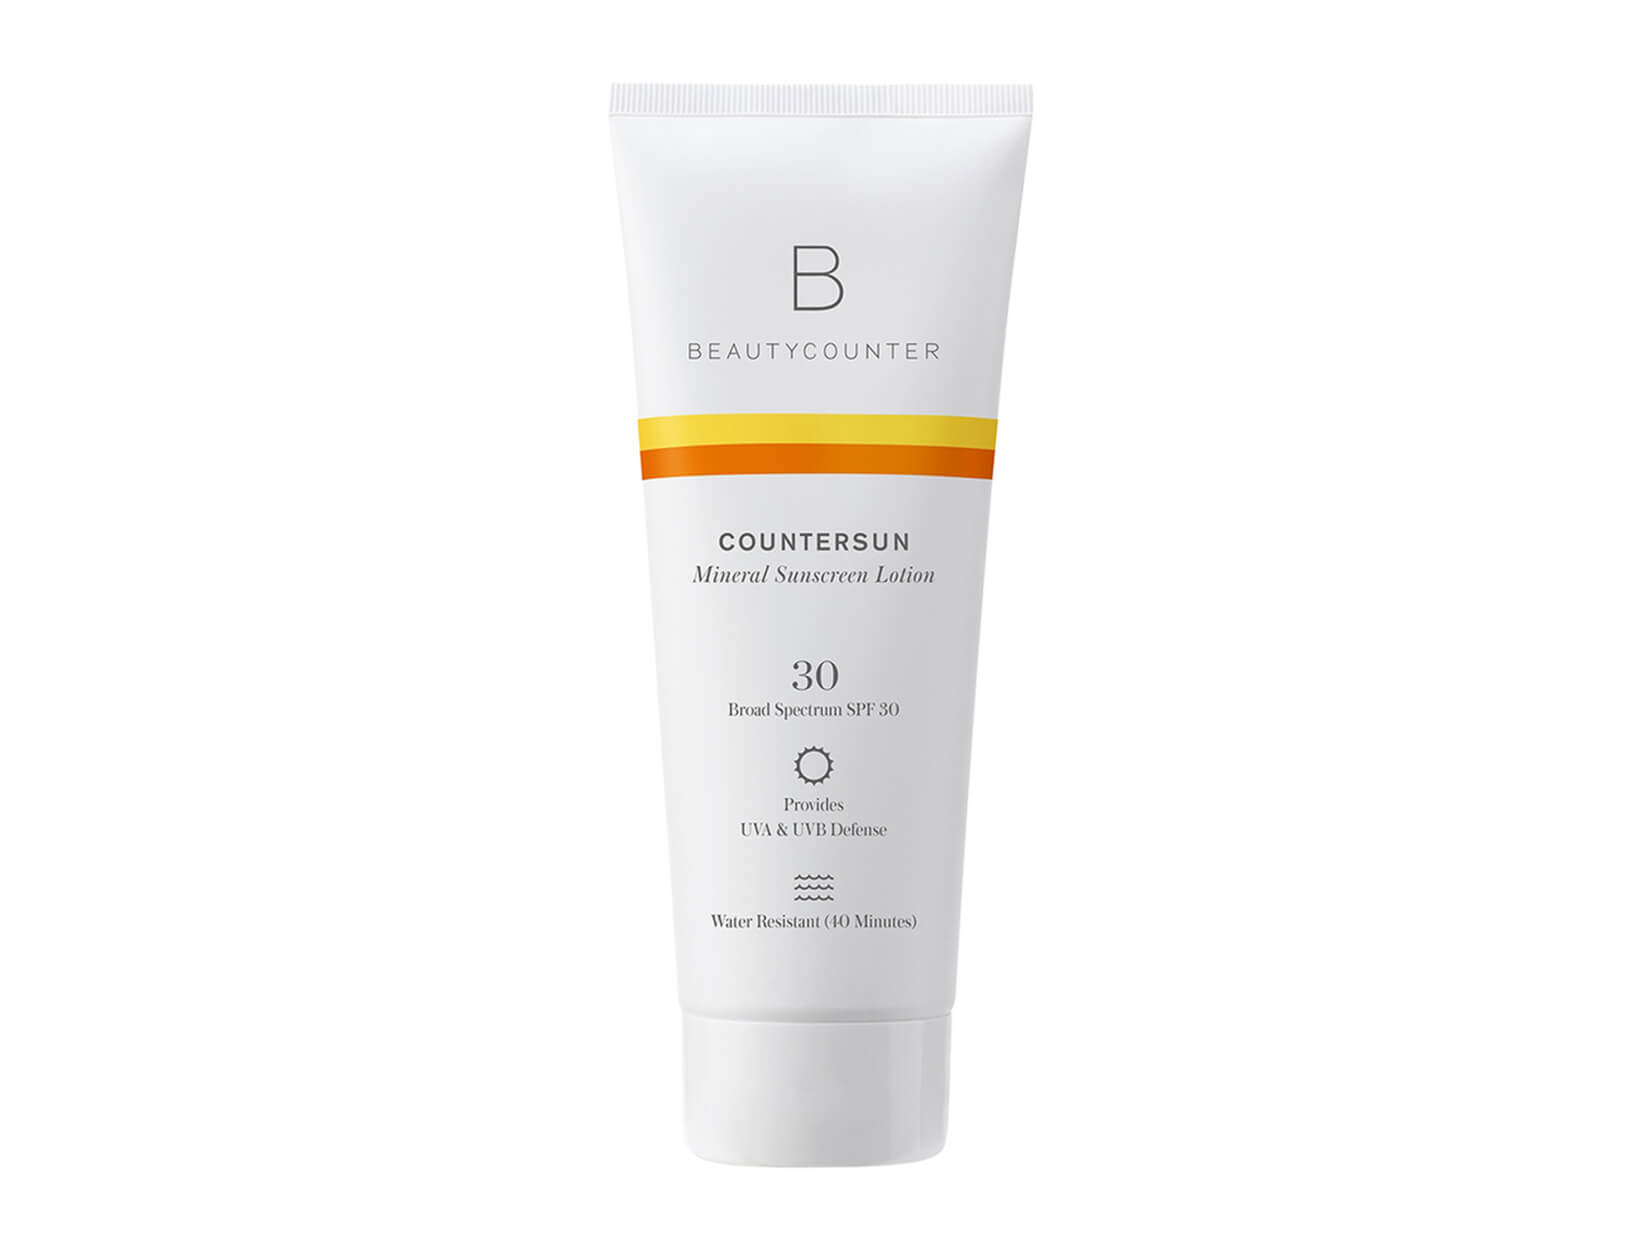 Beautycounter Countersun Mineral Sunscreen Lotion SPF 30